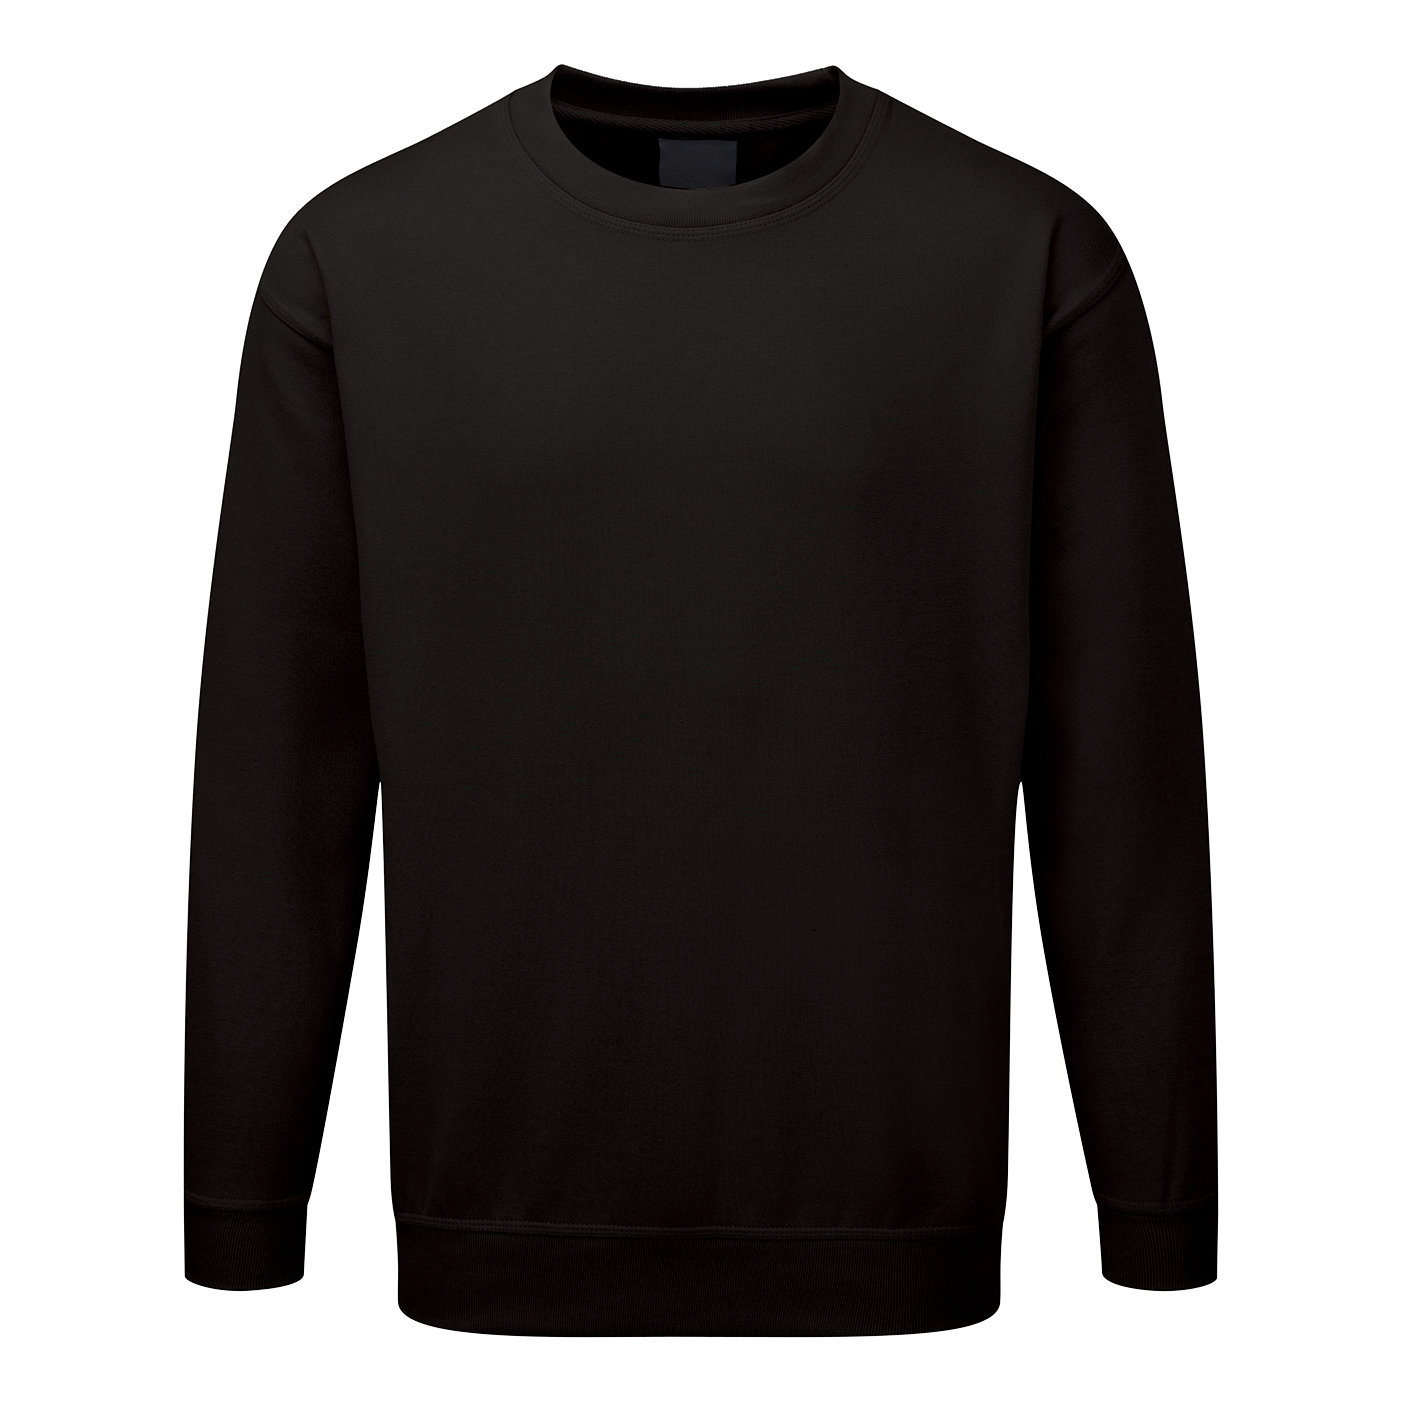 Sweatshirts / Jumpers / Hoodies Click Workwear Sweatshirt Polycotton 300gsm Large Black Ref CLPCSBLL *1-3 Days Lead Time*